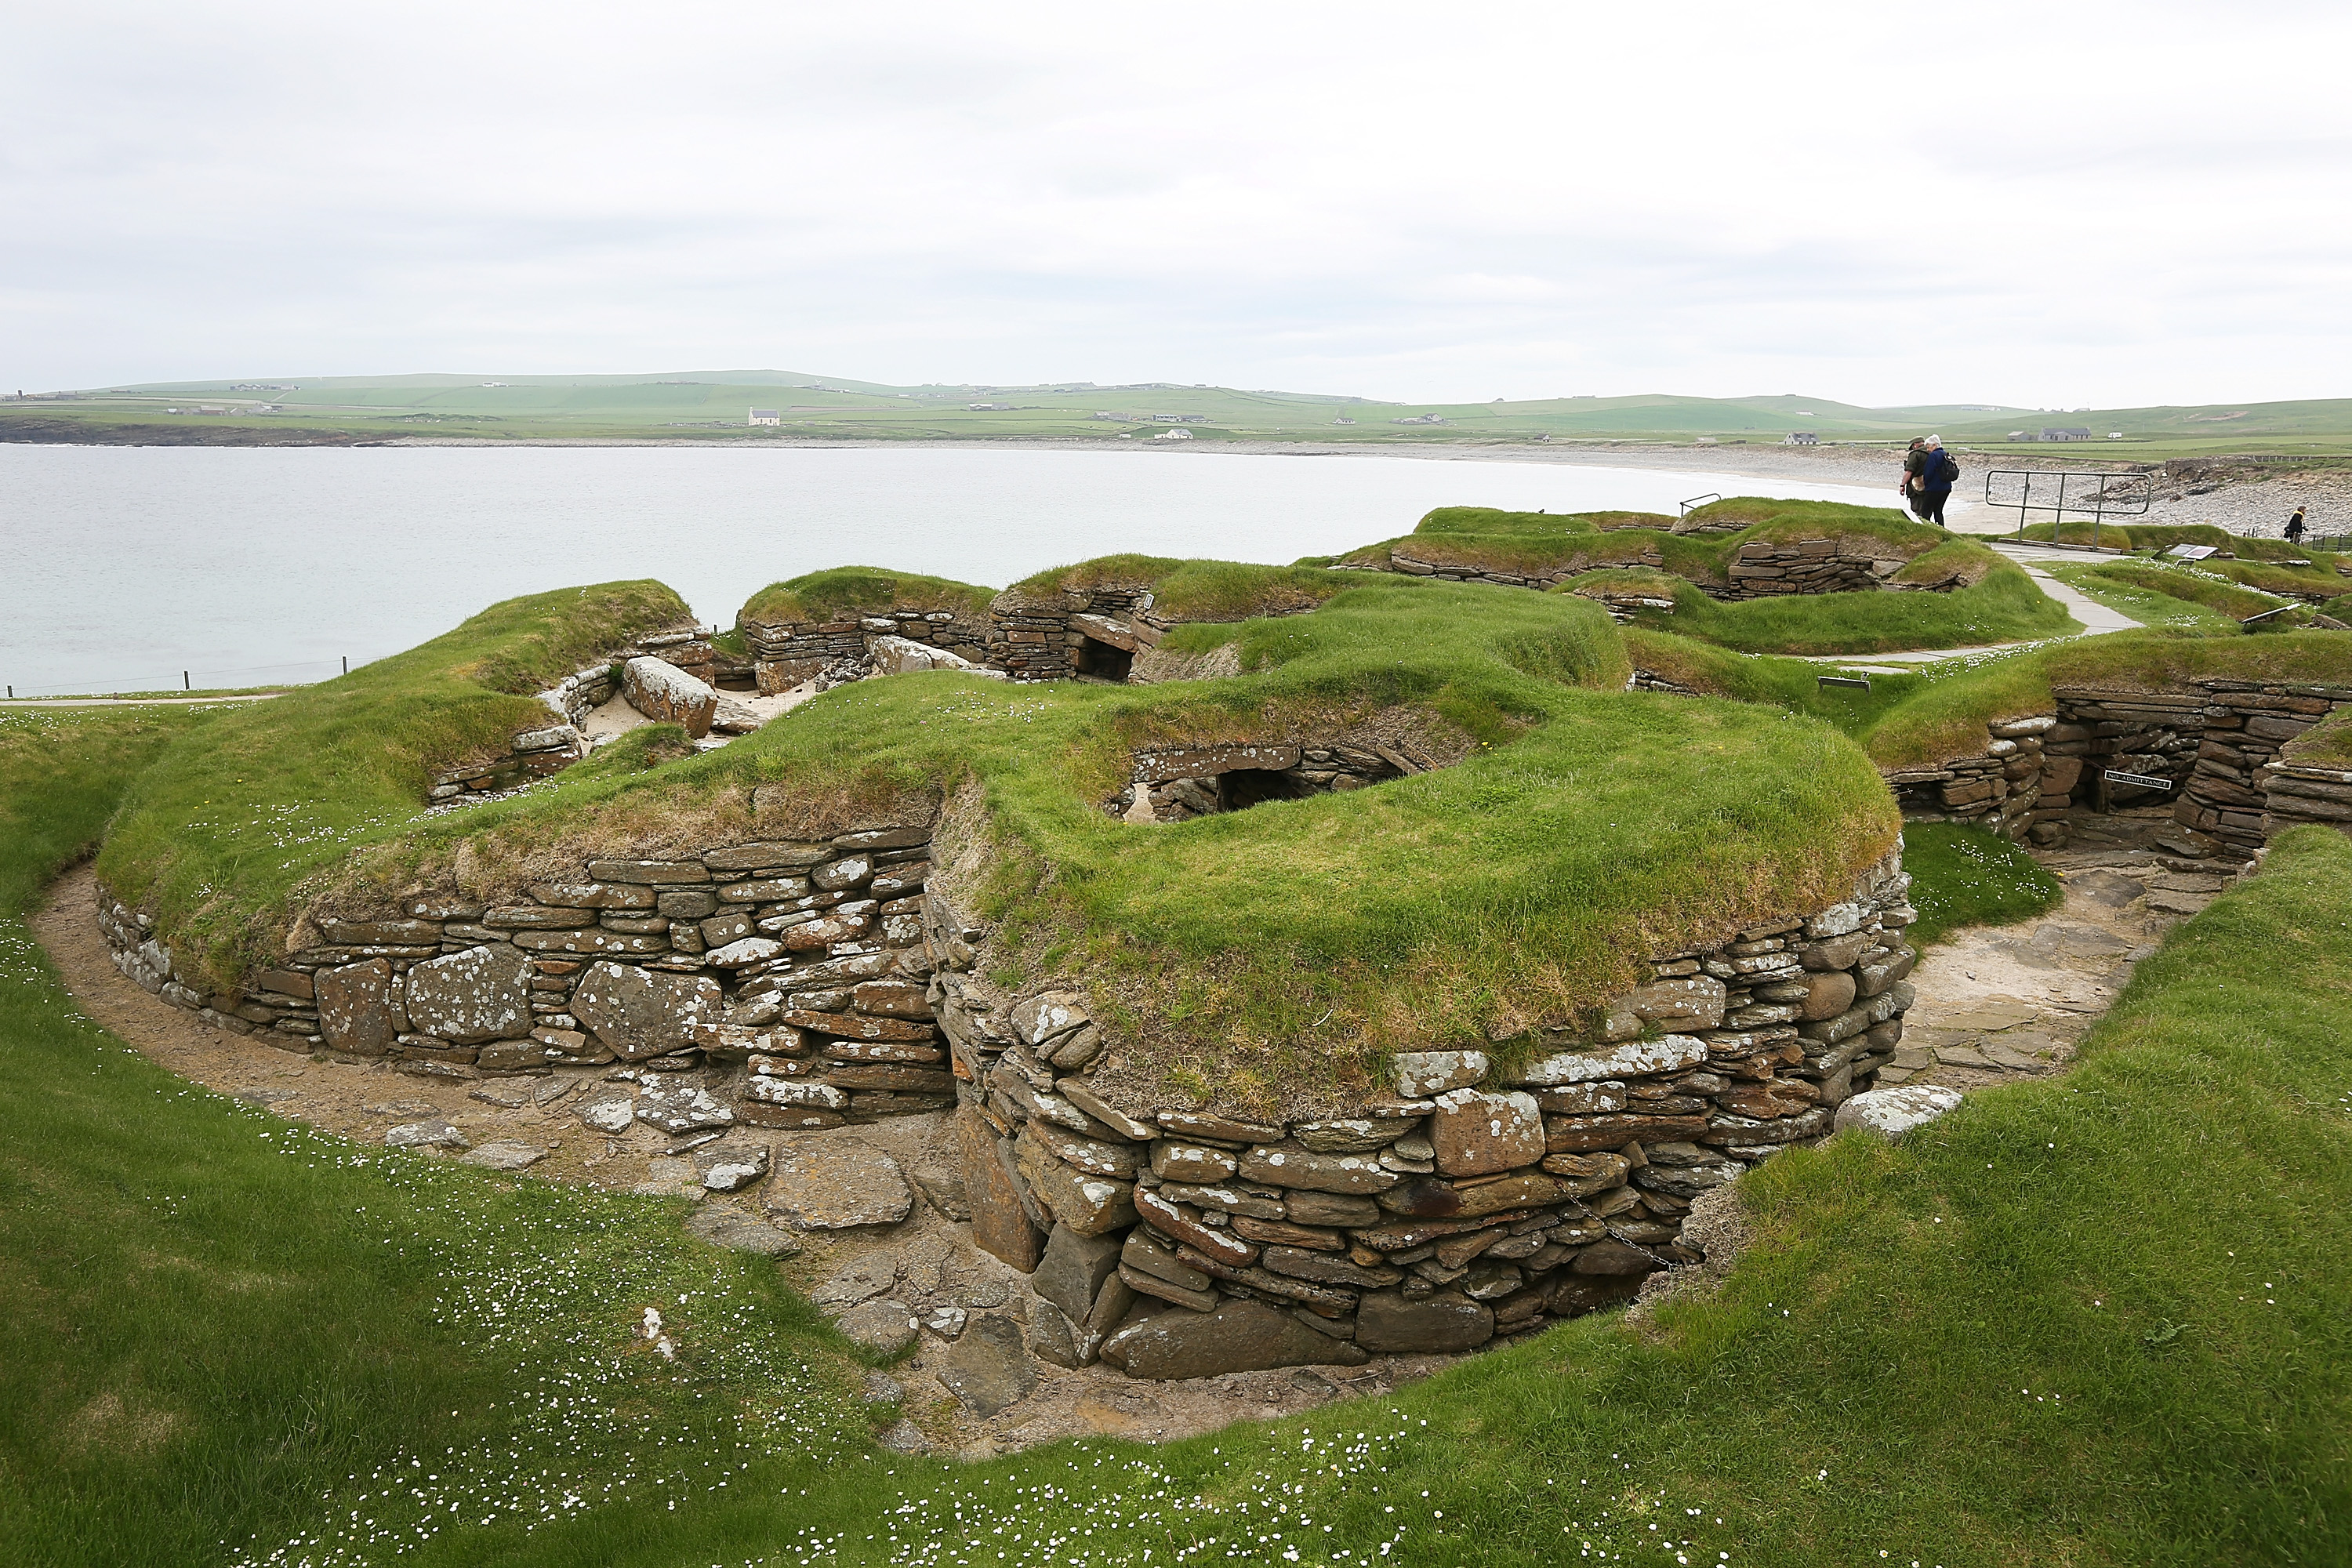 Houses of the Neolithic settlement of Skara Brae, on June 1, 2014 in Bay of Skaill, Scotland. The Skara Brae settlement was discovered in 1850 and is one of the most important prehistoric sites on the Orkney, showing how people lived approximately 5,000 years ago.